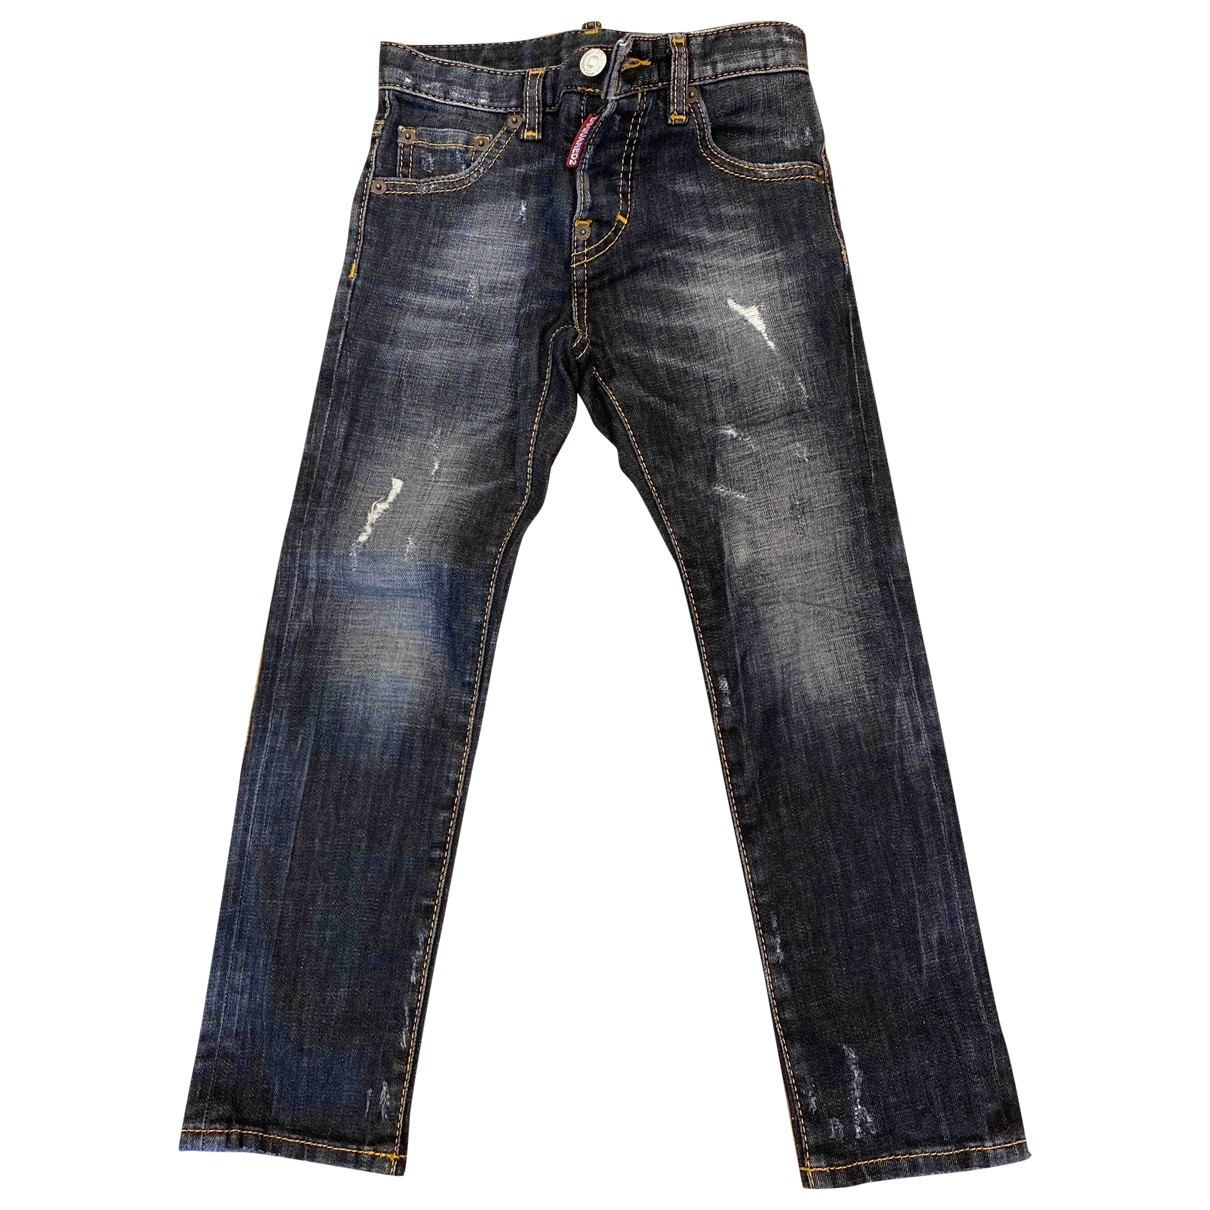 Dsquared2 \N Black Denim - Jeans Trousers for Kids 6 years - until 45 inches UK